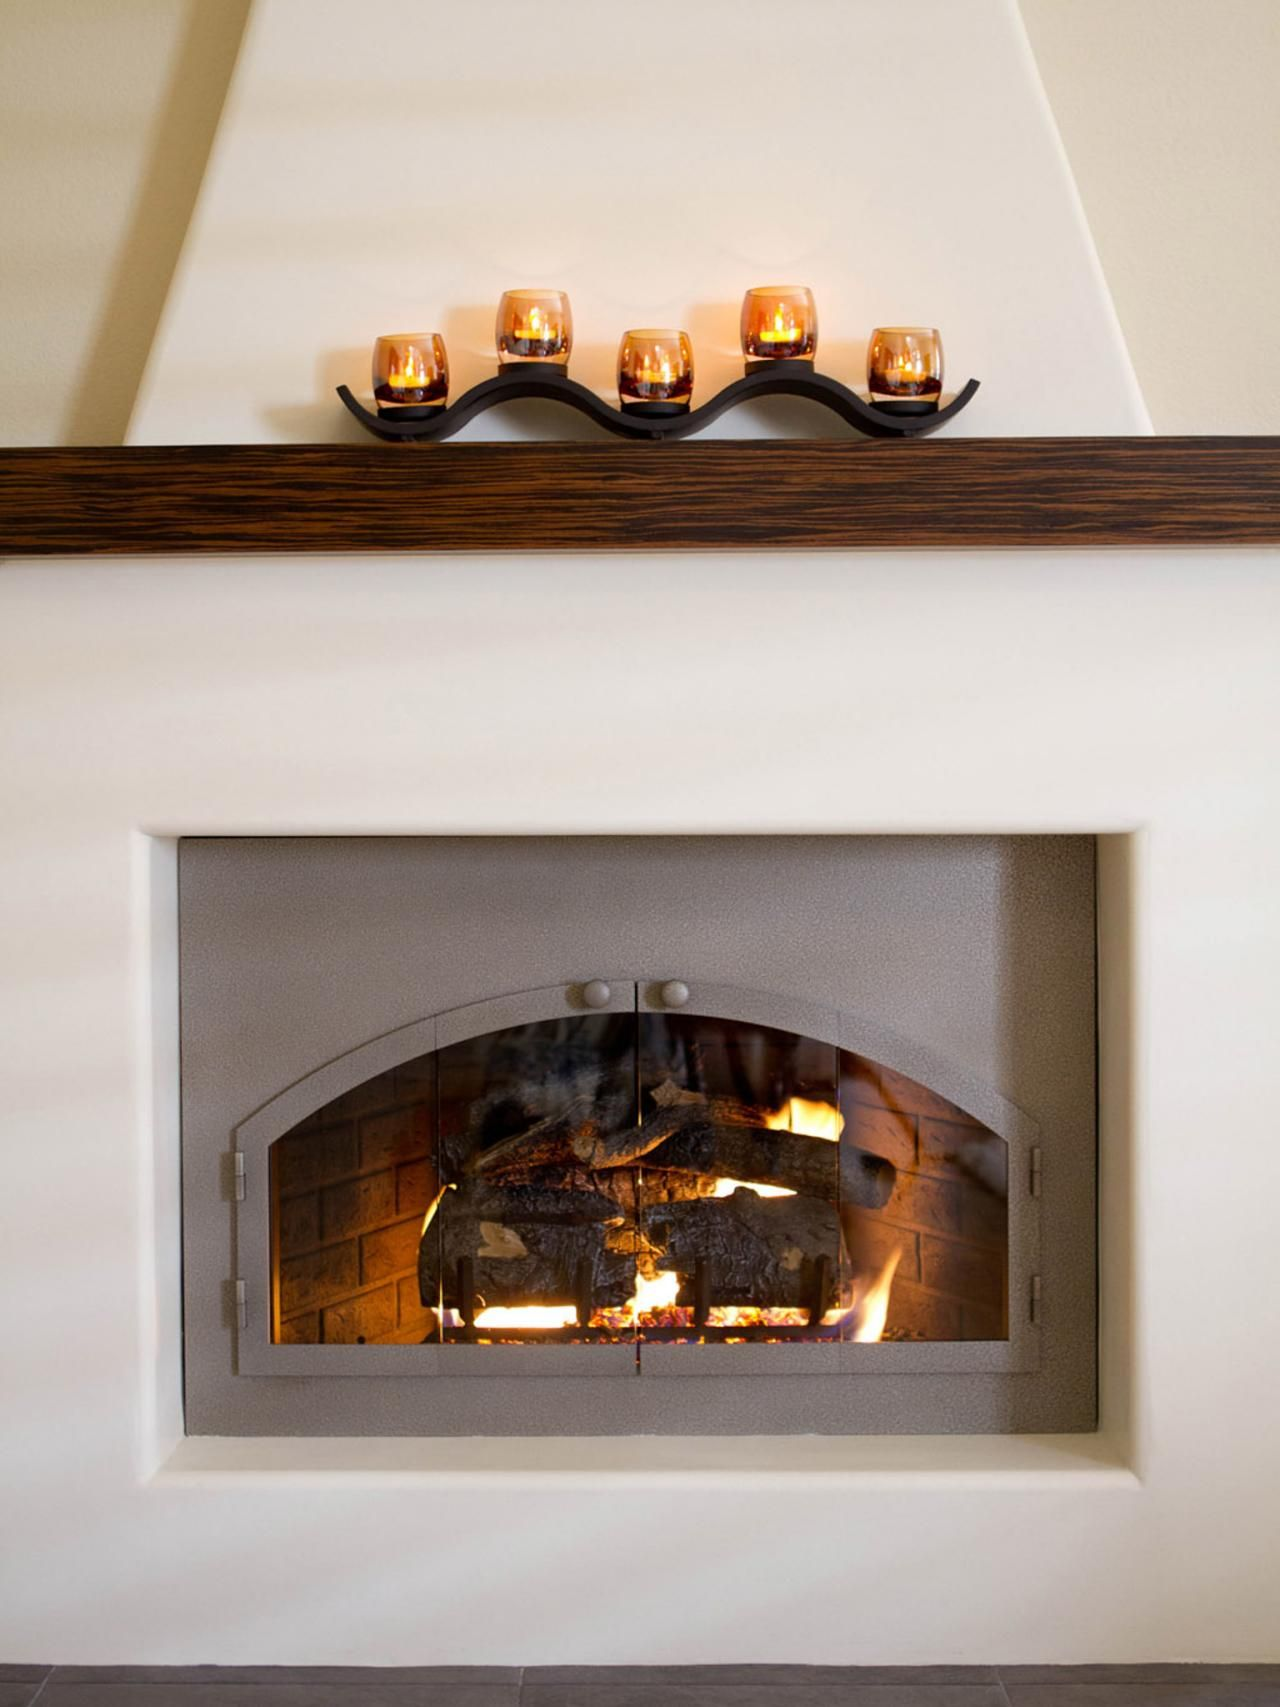 A Stunning Adobe Fireplace Is Given A Modern Update In This Southwestern Inspired Living Room On Adobe Fireplace Southwestern Fireplaces Small Basement Remodel